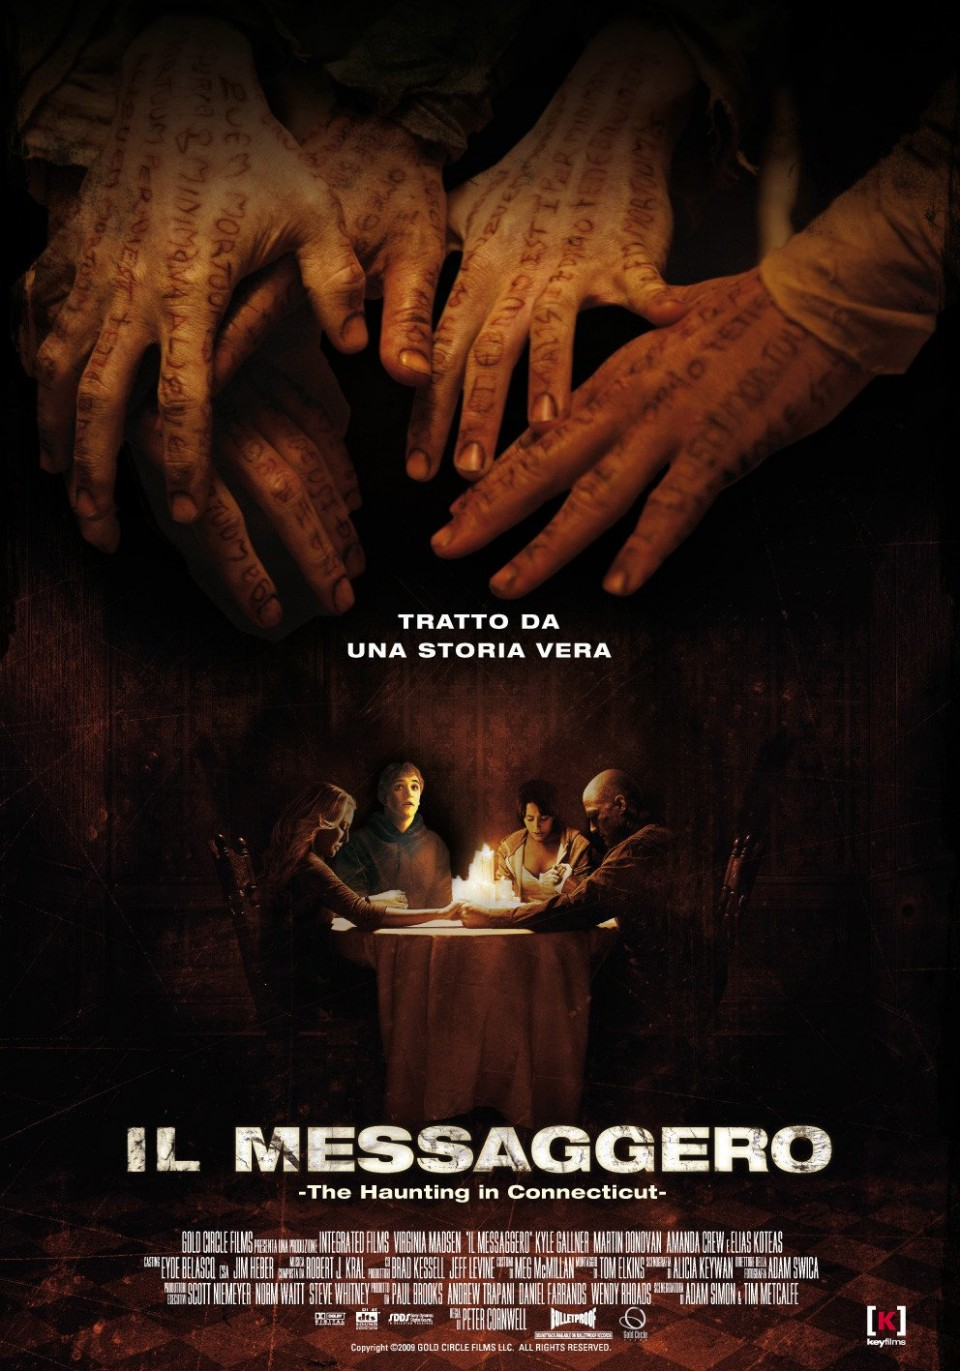 Il Messaggero - the Haunting in Connecticut